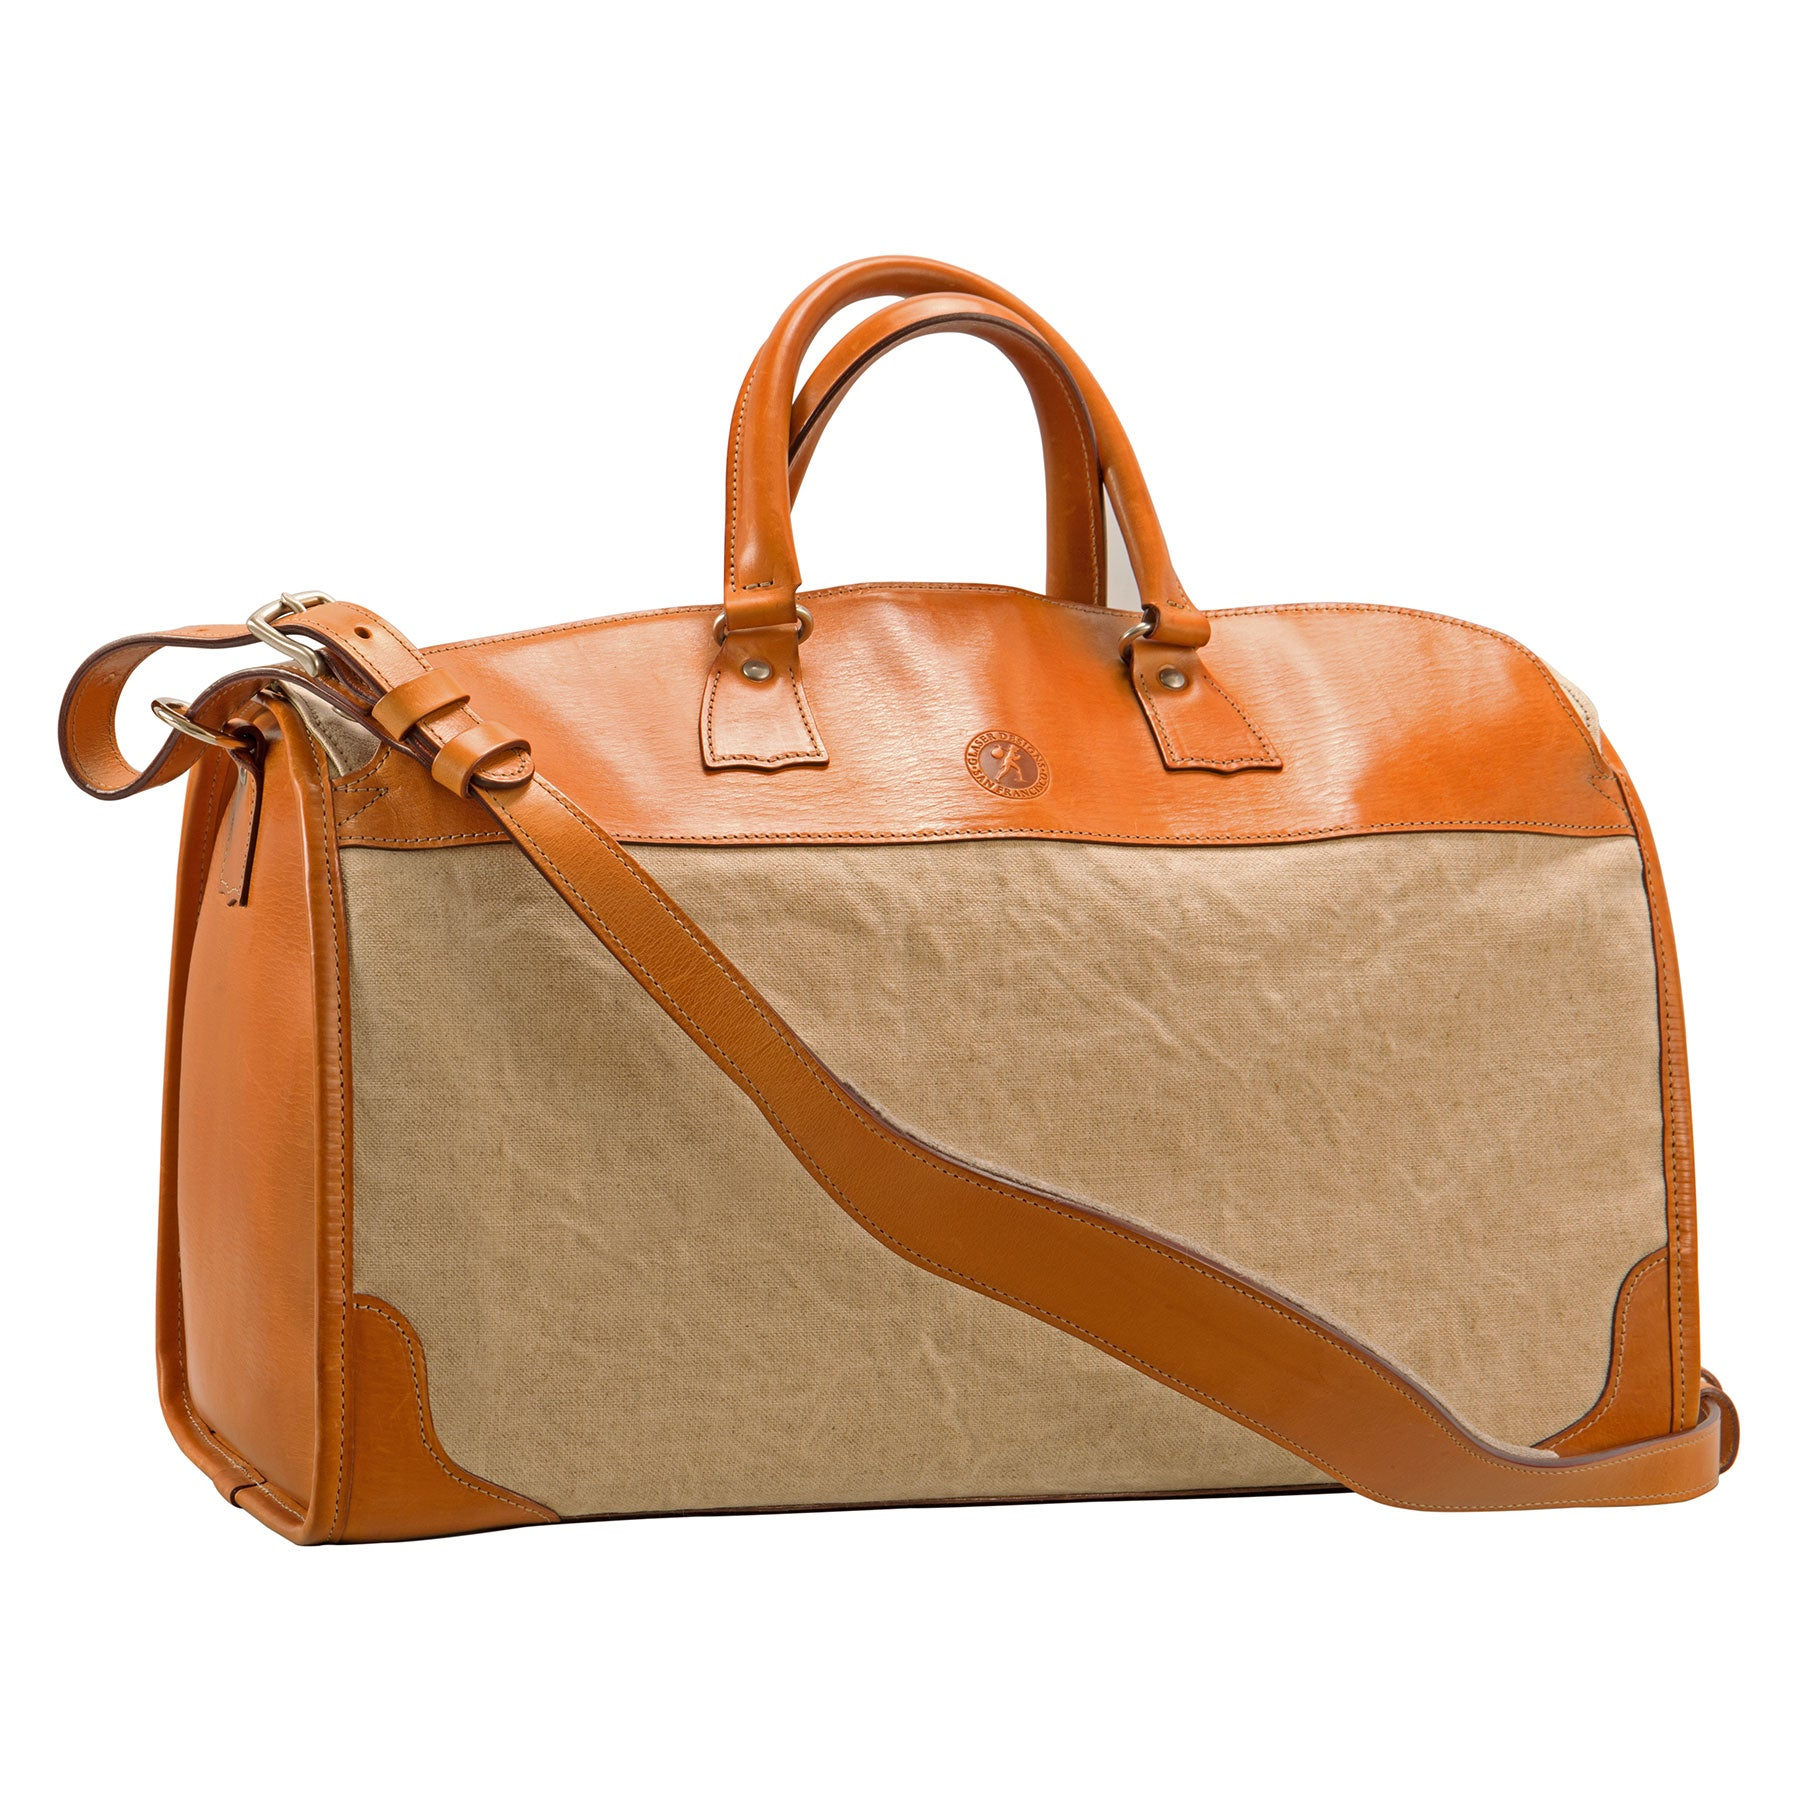 Stadium Bag: Hand-Finished Linen and Hand-Burnished, Natural Leather